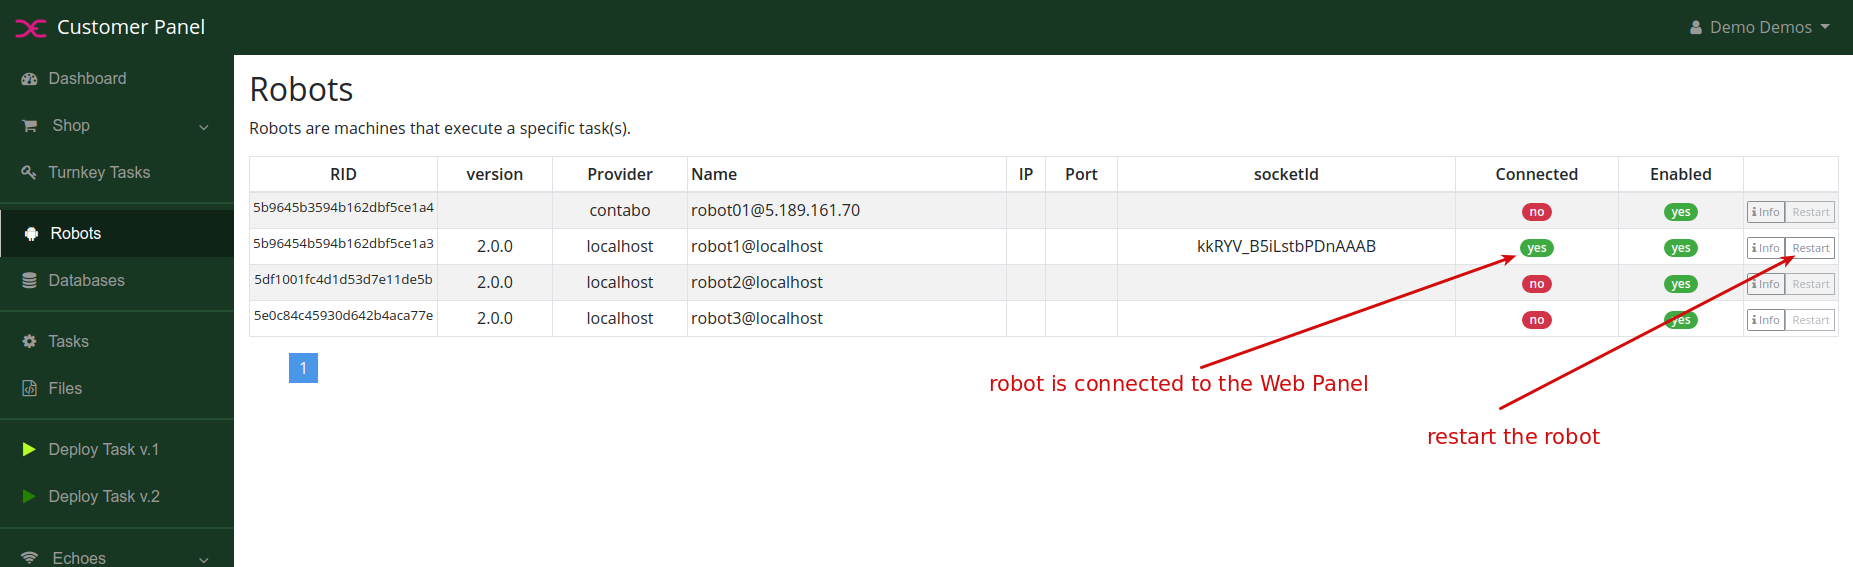 DEX8 Web Panel - Robots